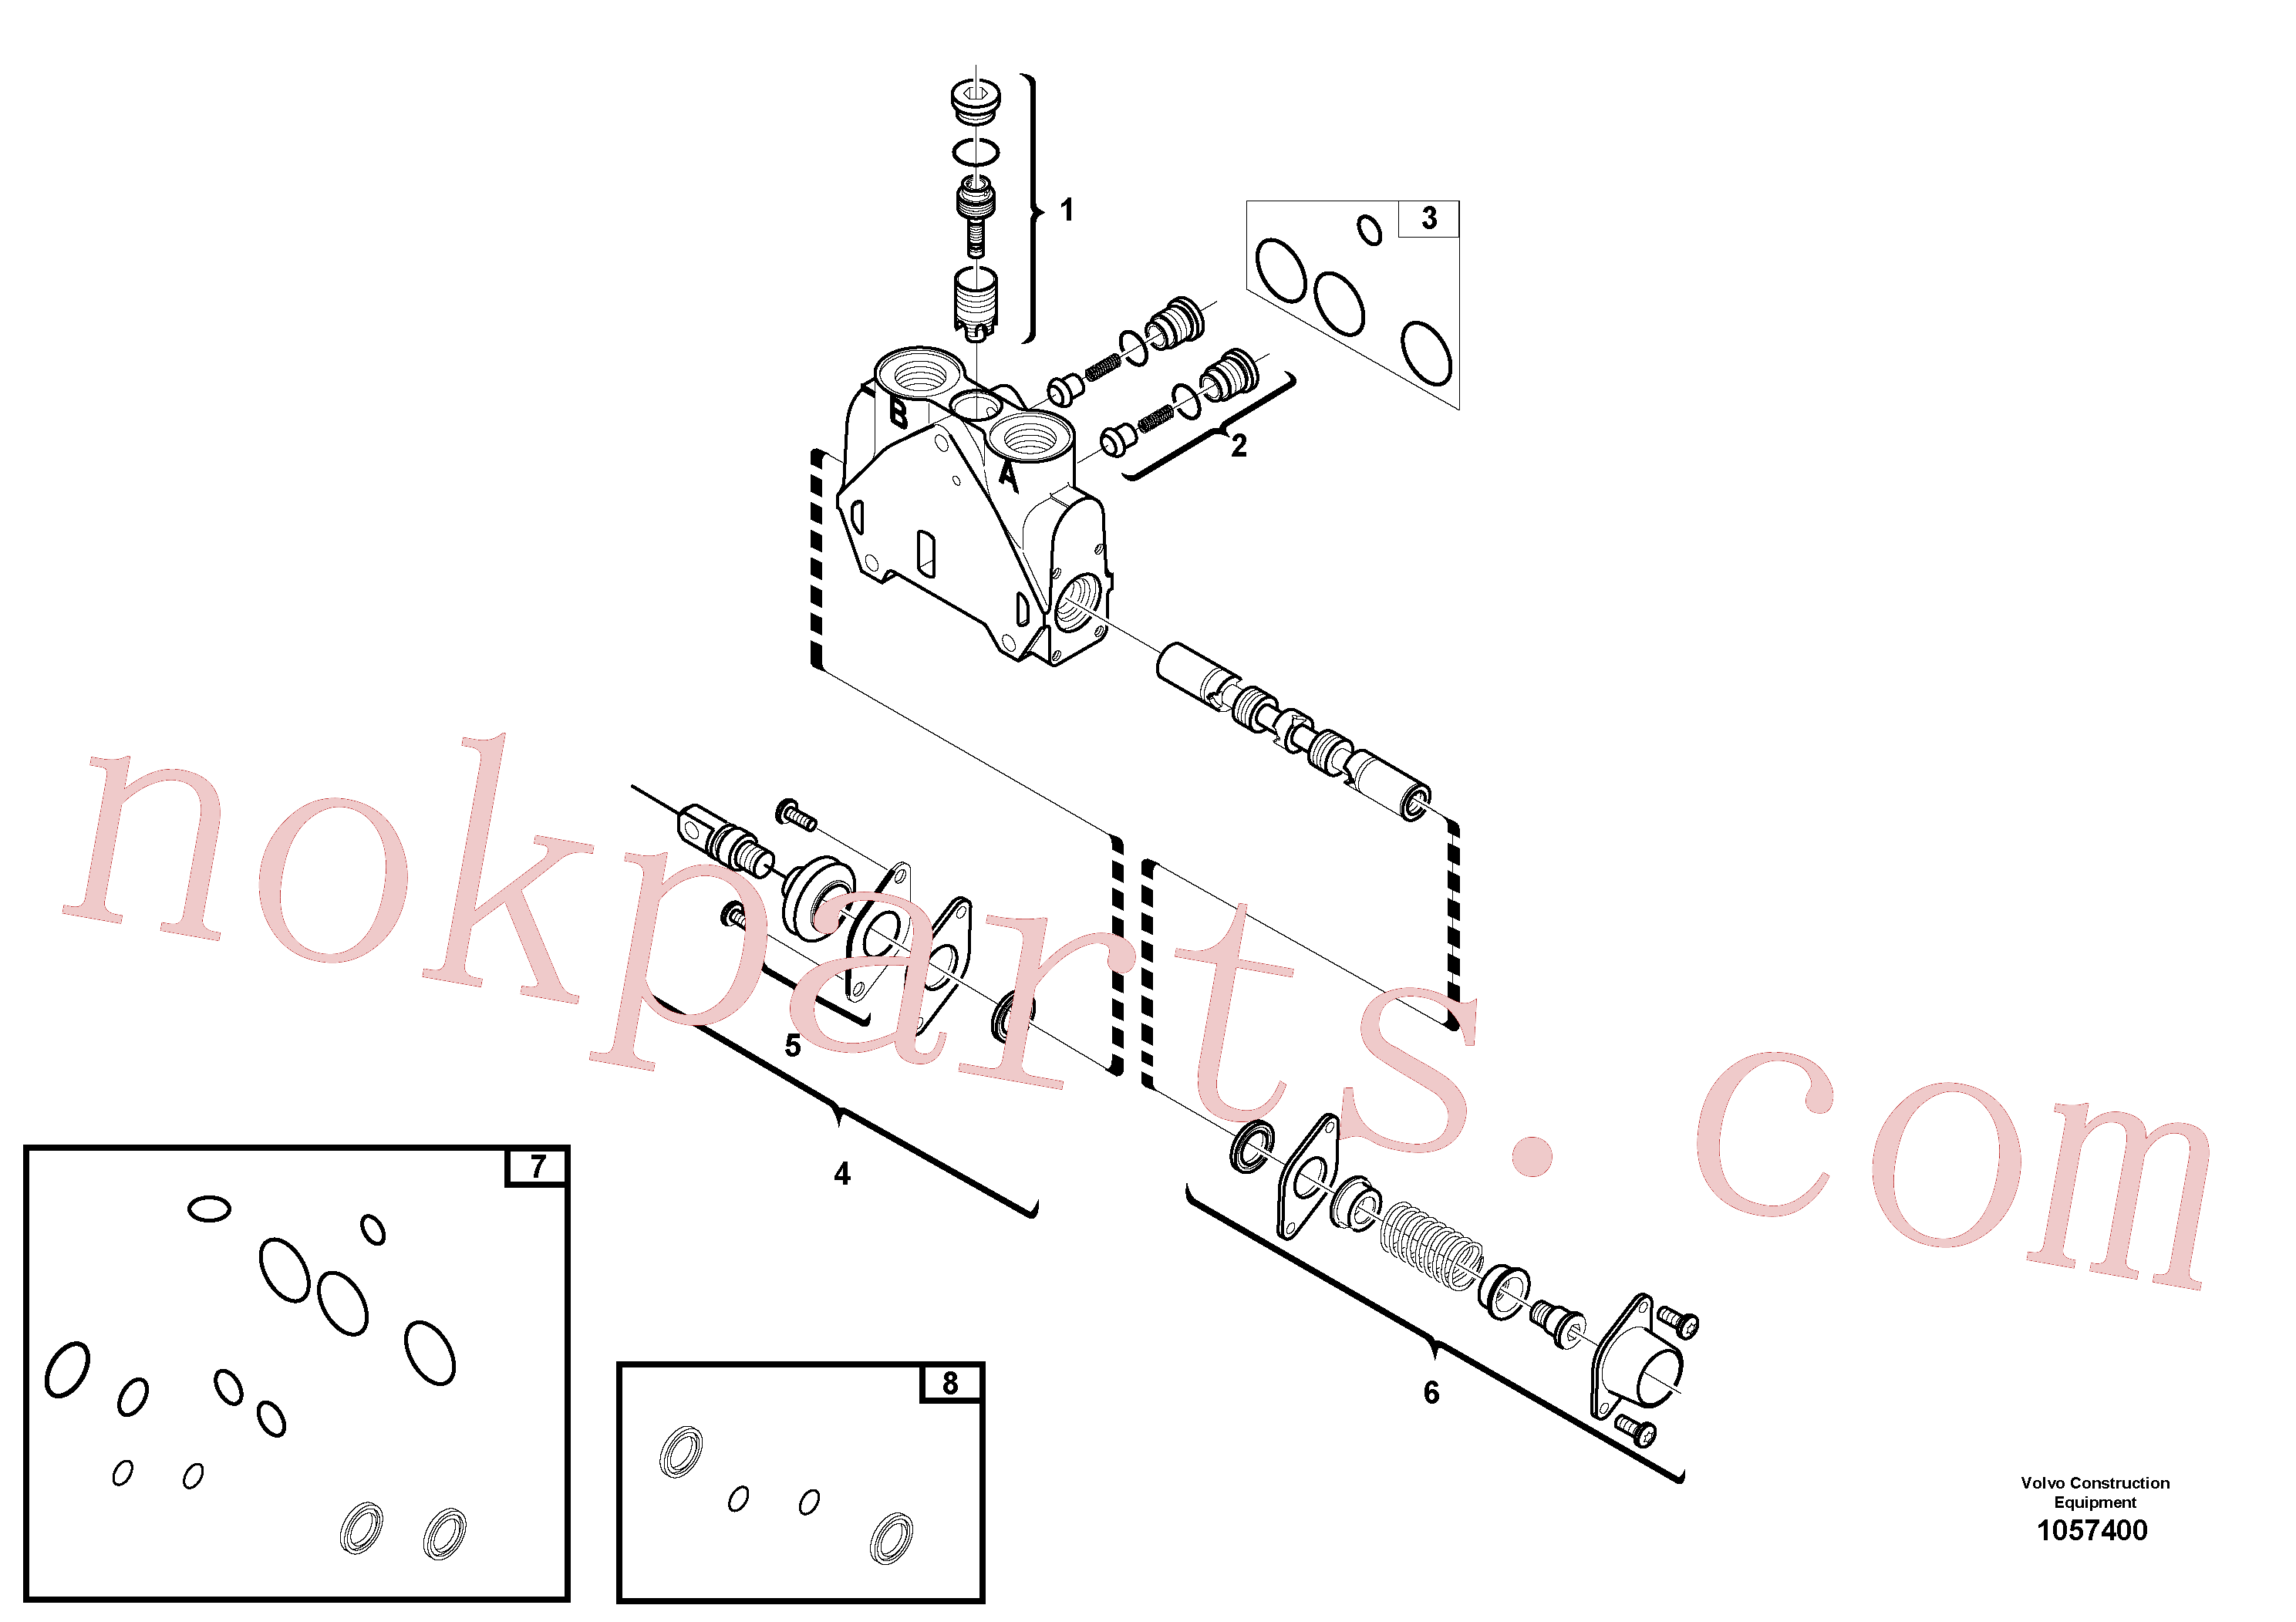 VOE15171623 for Volvo Valve section(1057400 assembly)